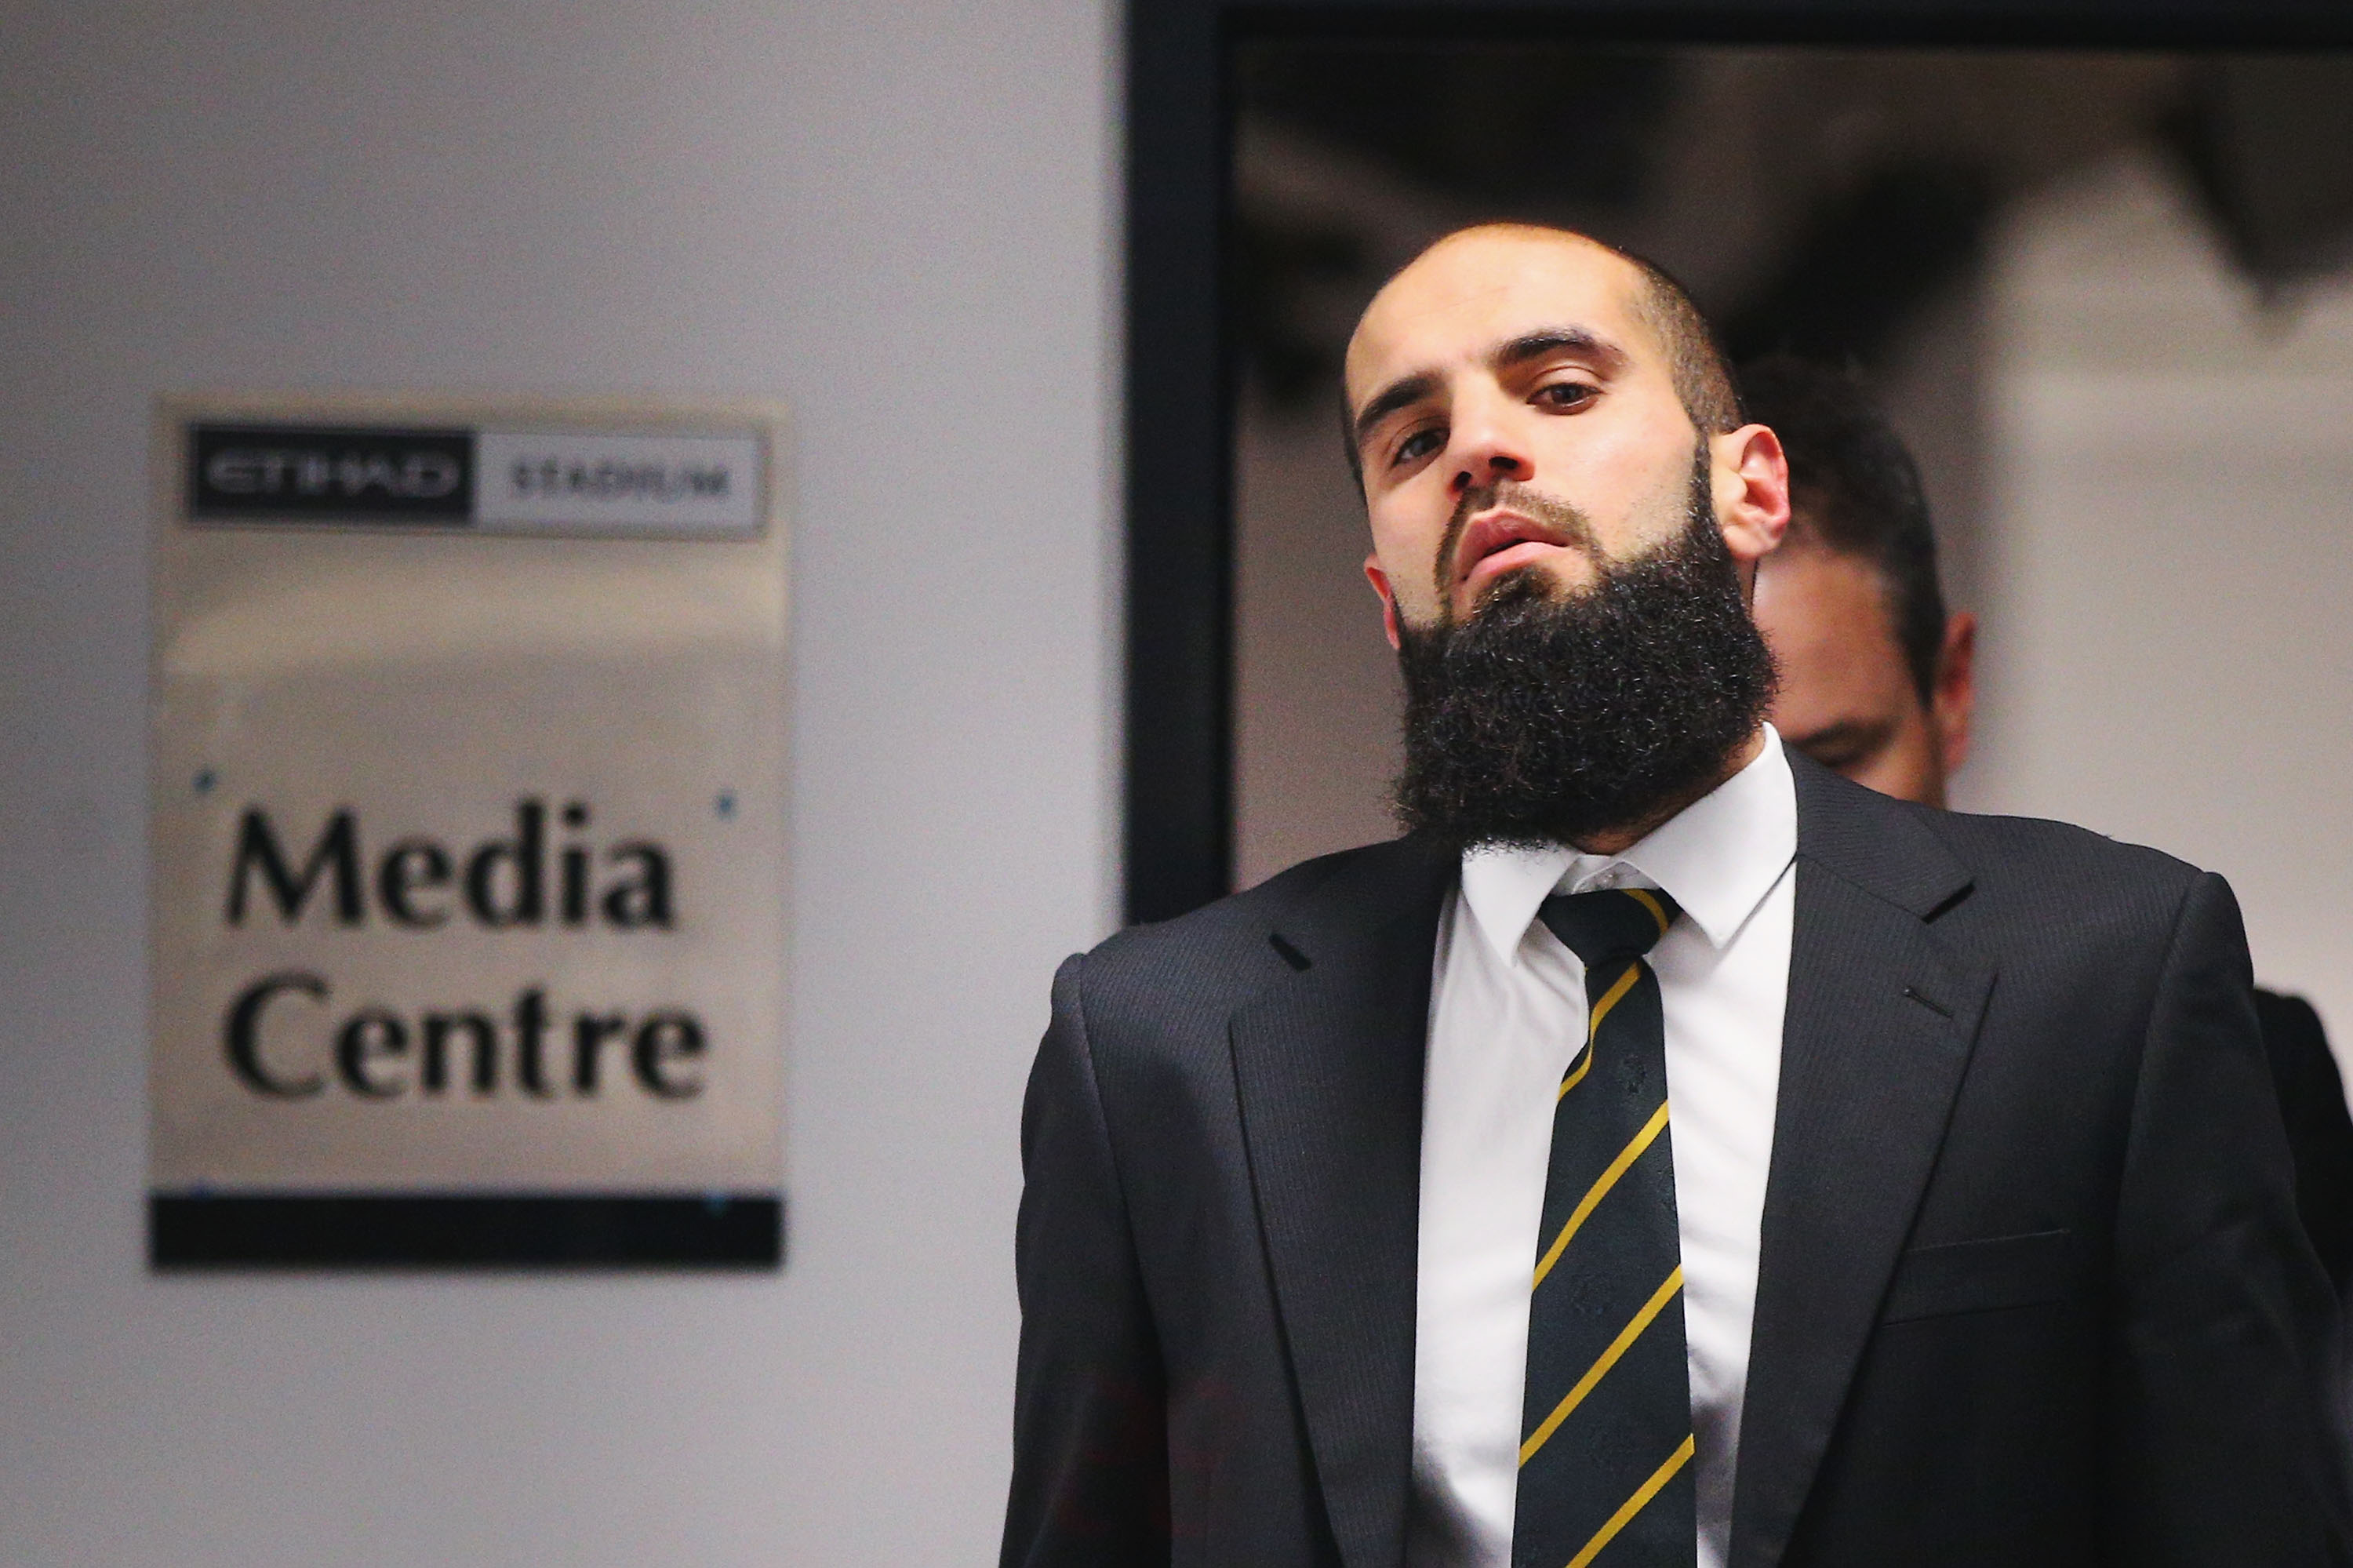 AFL to appeal 'manifestly inadequate' two-week ban on Houli